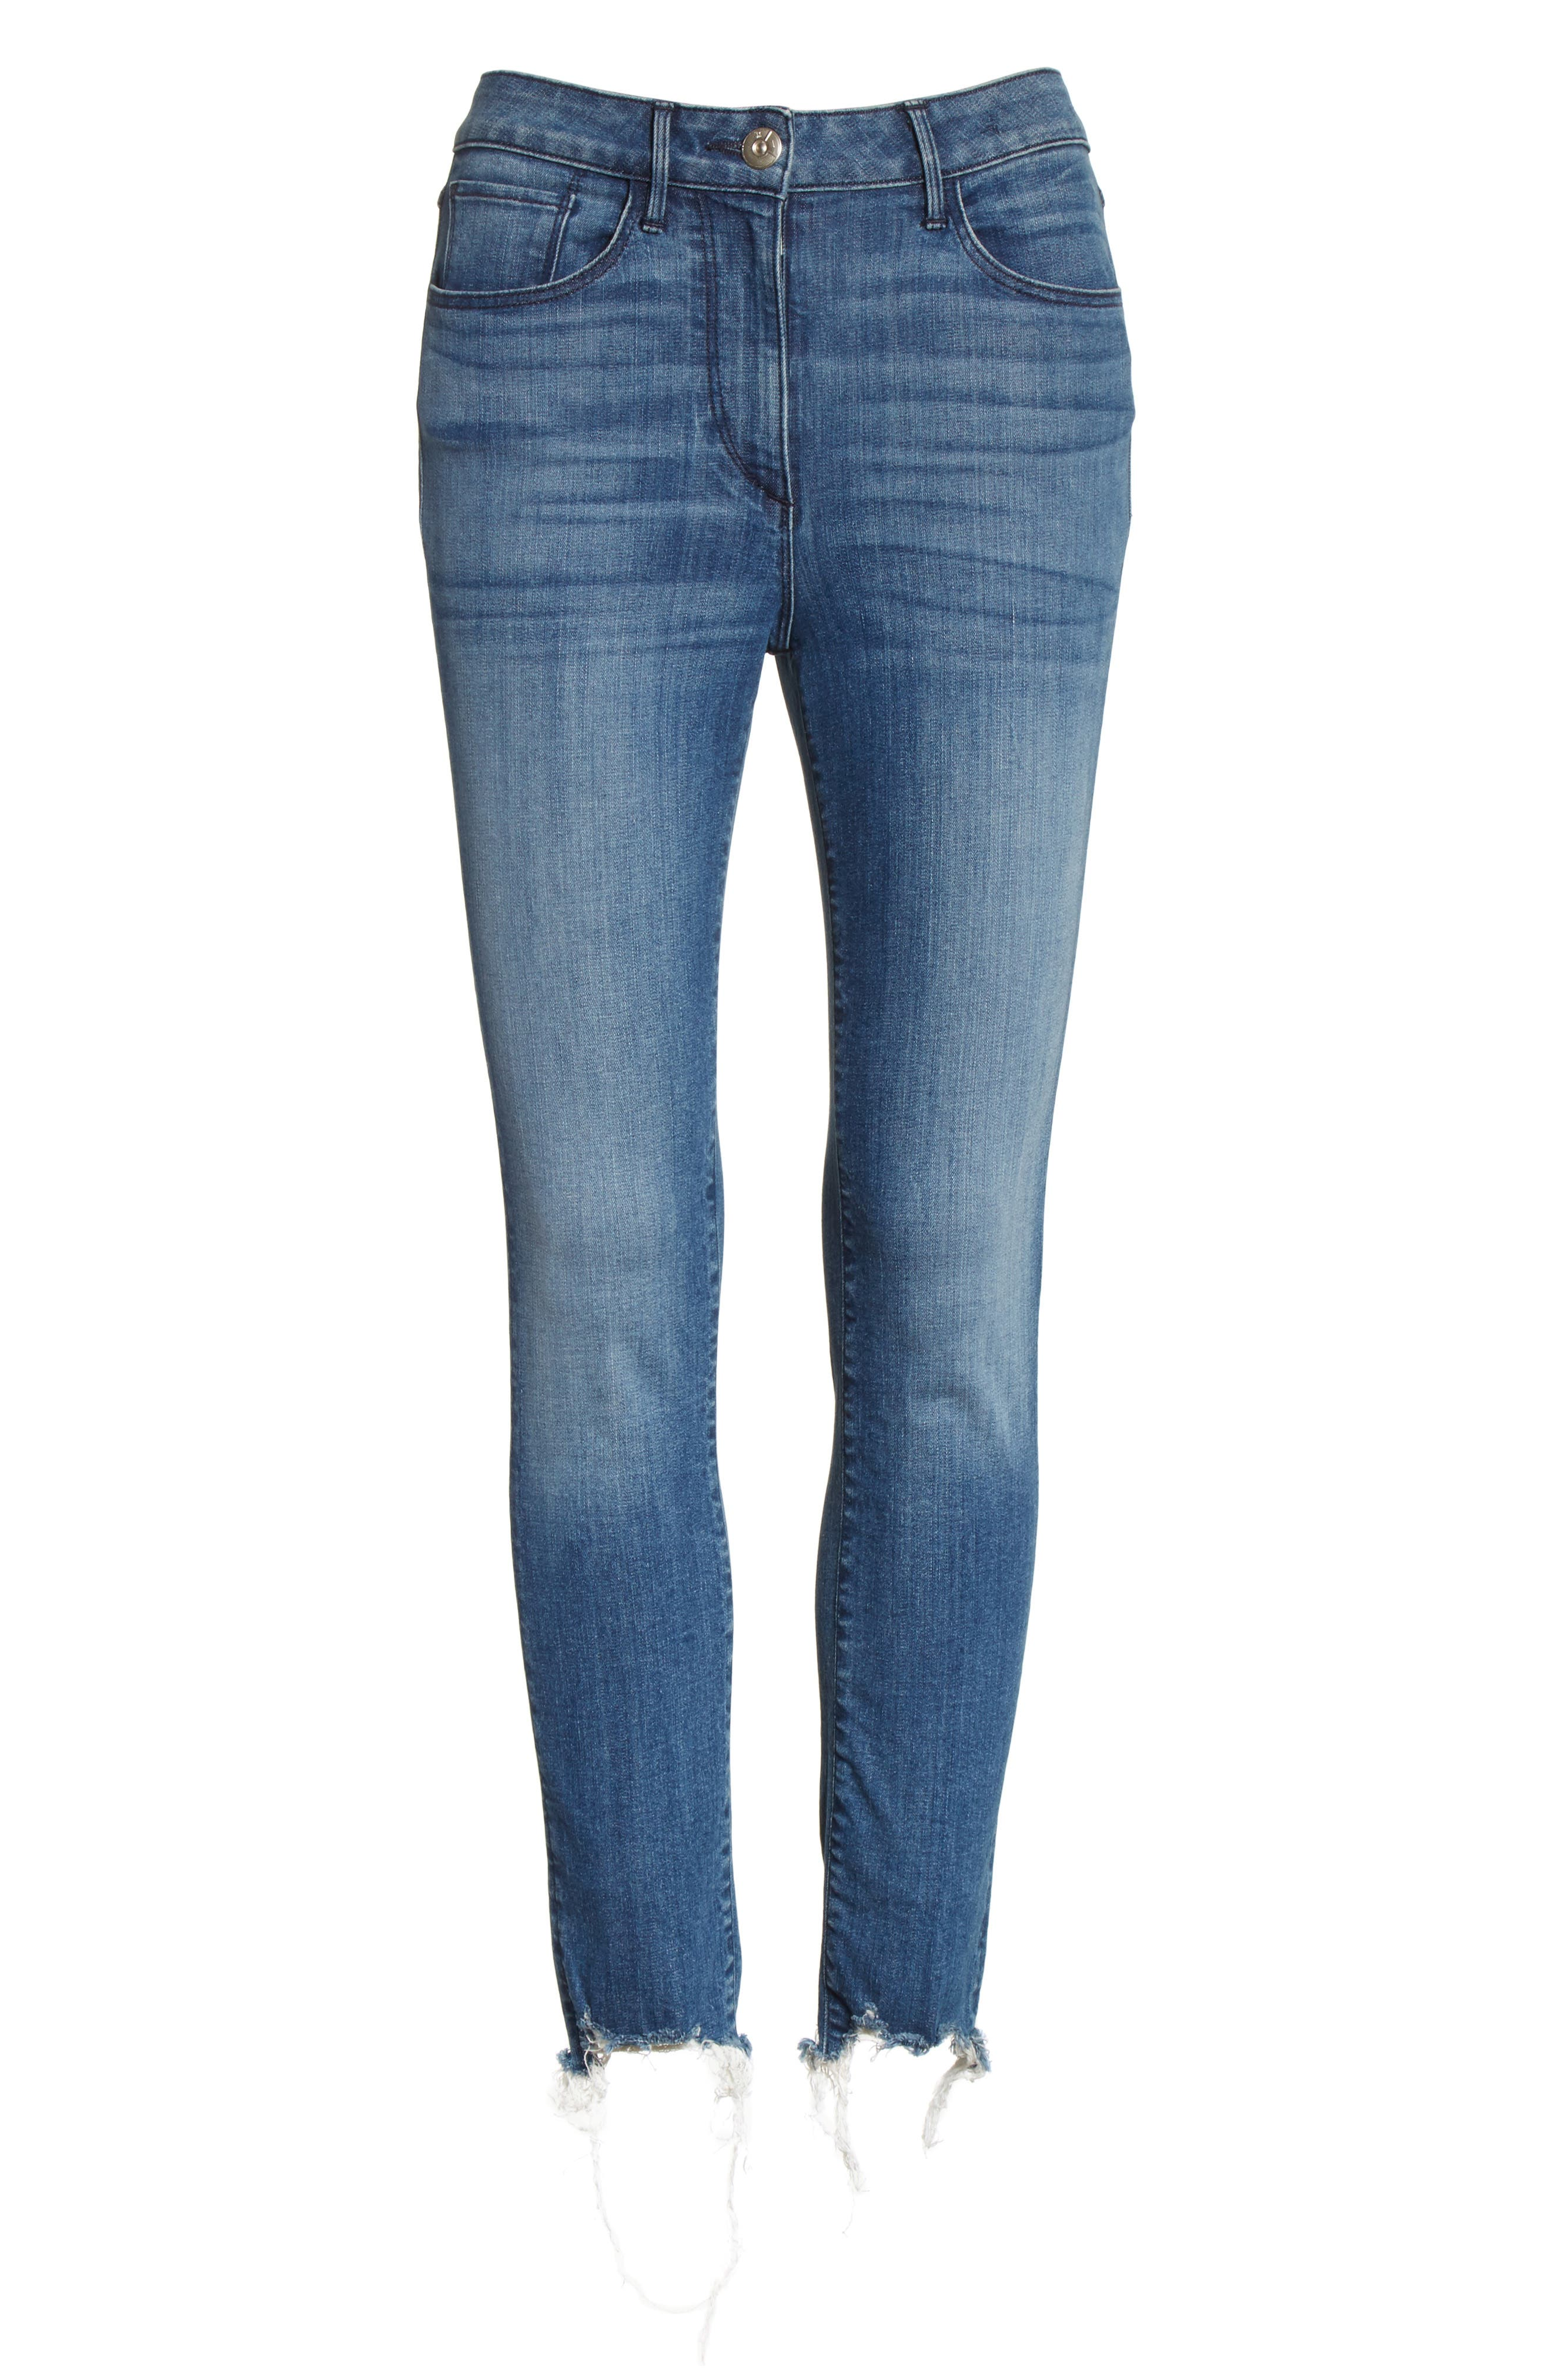 W3 Crop Skinny Jeans,                             Alternate thumbnail 6, color,                             428